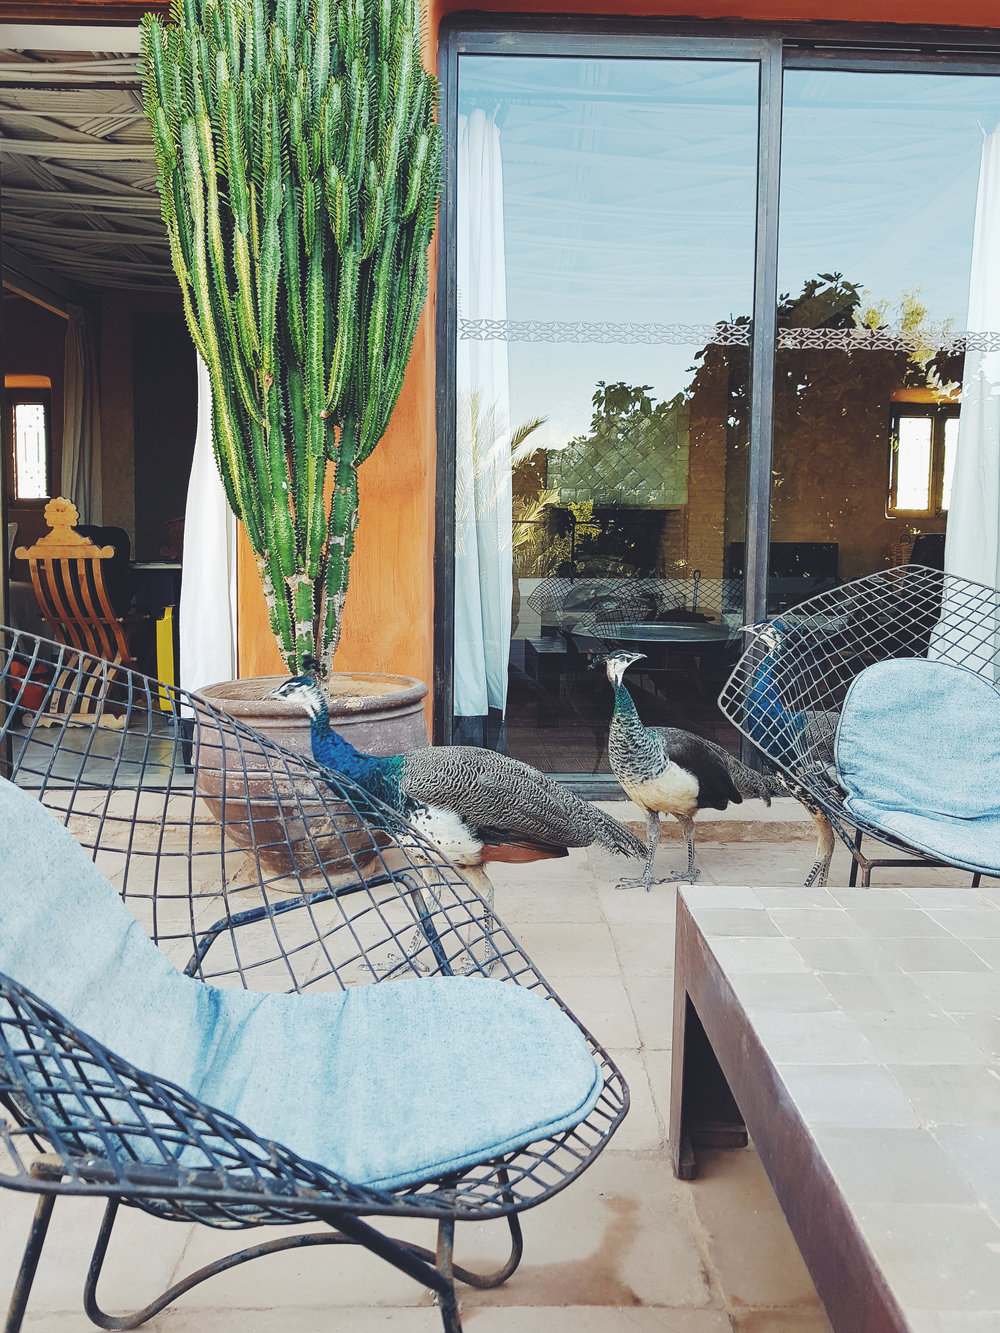 MOROCCAN RETREAT - Featuring Matt Ribeiro da Cruz